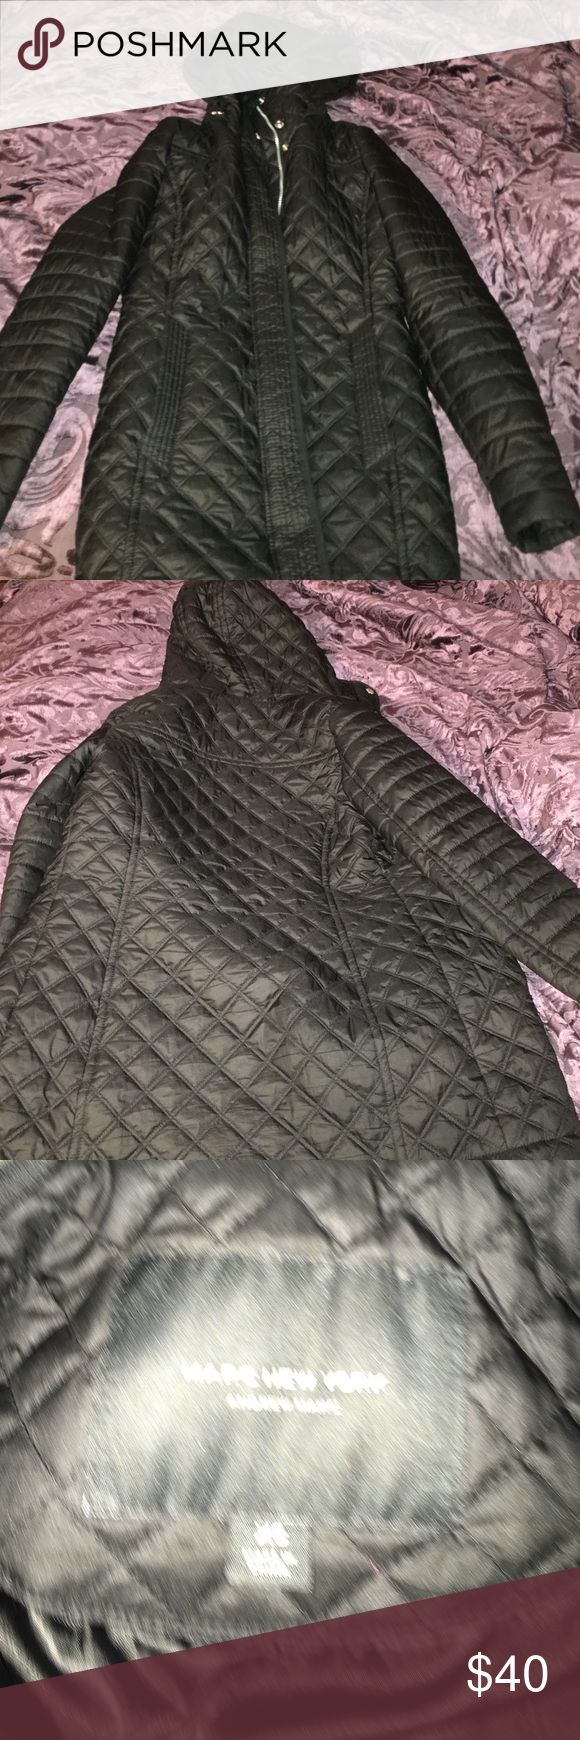 """Black quilted winter jacket Andre marc """"Maggie"""" Perfect condition like new . Pregnant and no longer fits my stomach . Size xs but fits like a small. I'm 5,2"""" and it length ends right below my butt. Arms are perfect length . Warm jacket but not to puffy . Make An offer. Jacket is in perfect condition. Style is called """"Maggie"""" can be found on Amazon for $200…"""